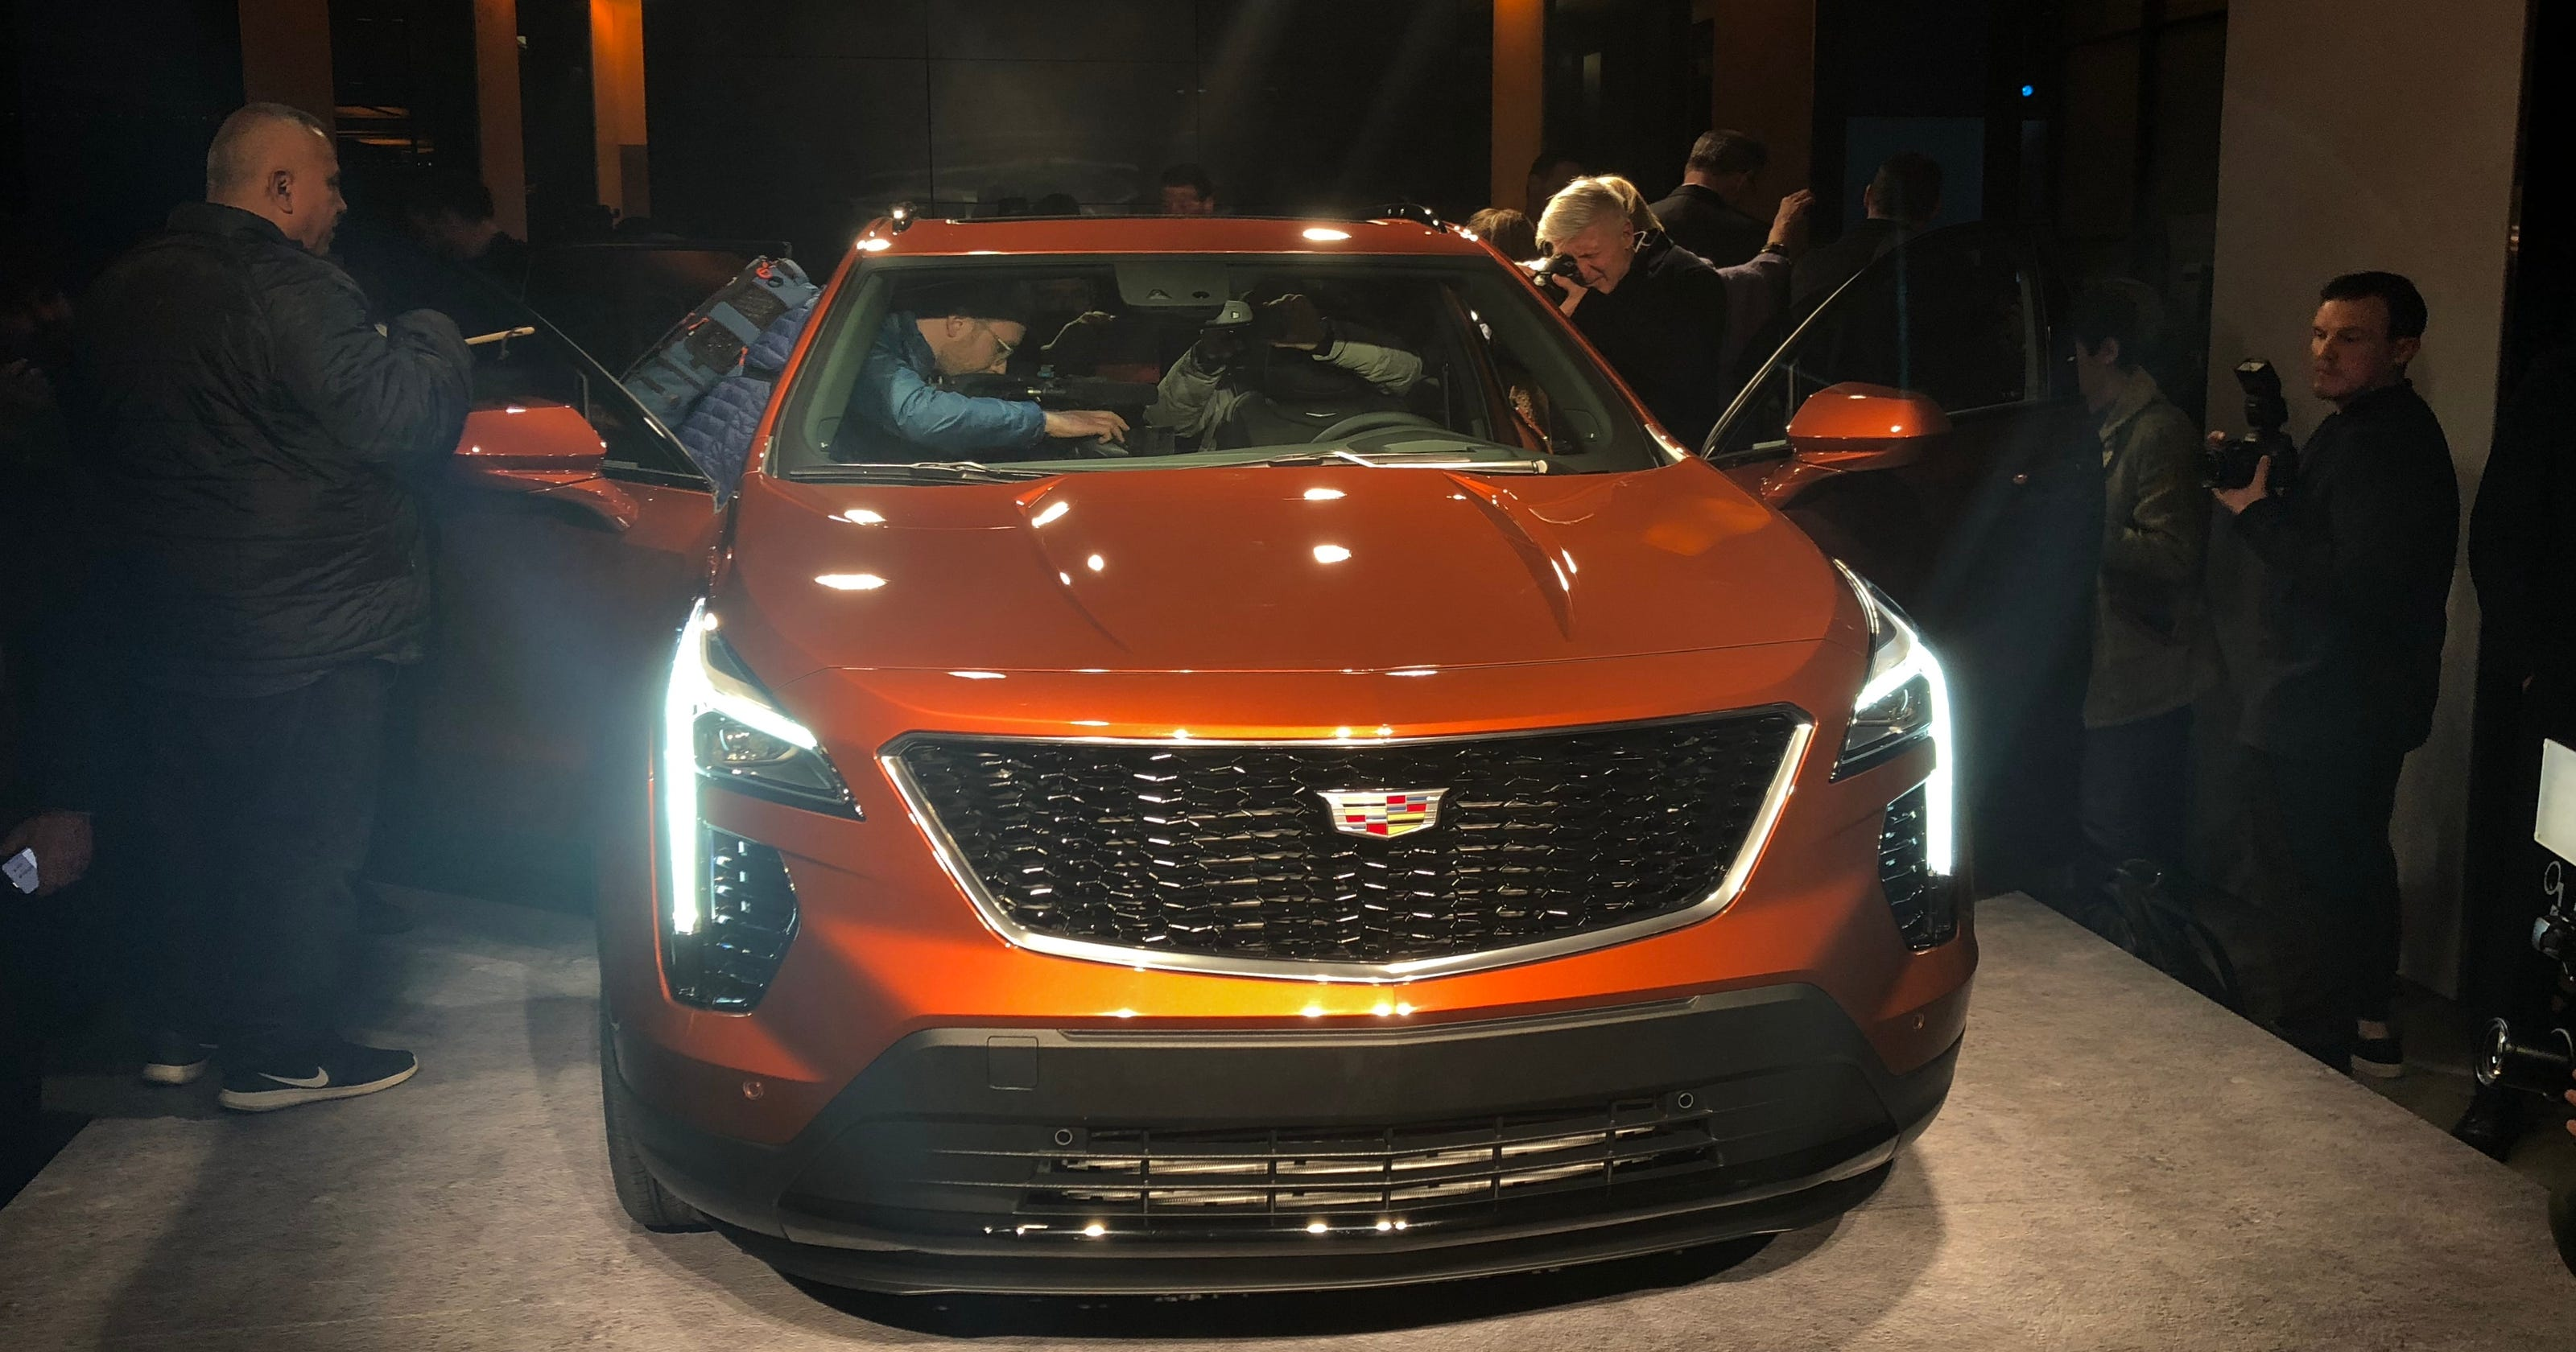 New York Auto Show: Cadillac XT4 brand new crossover is revealed